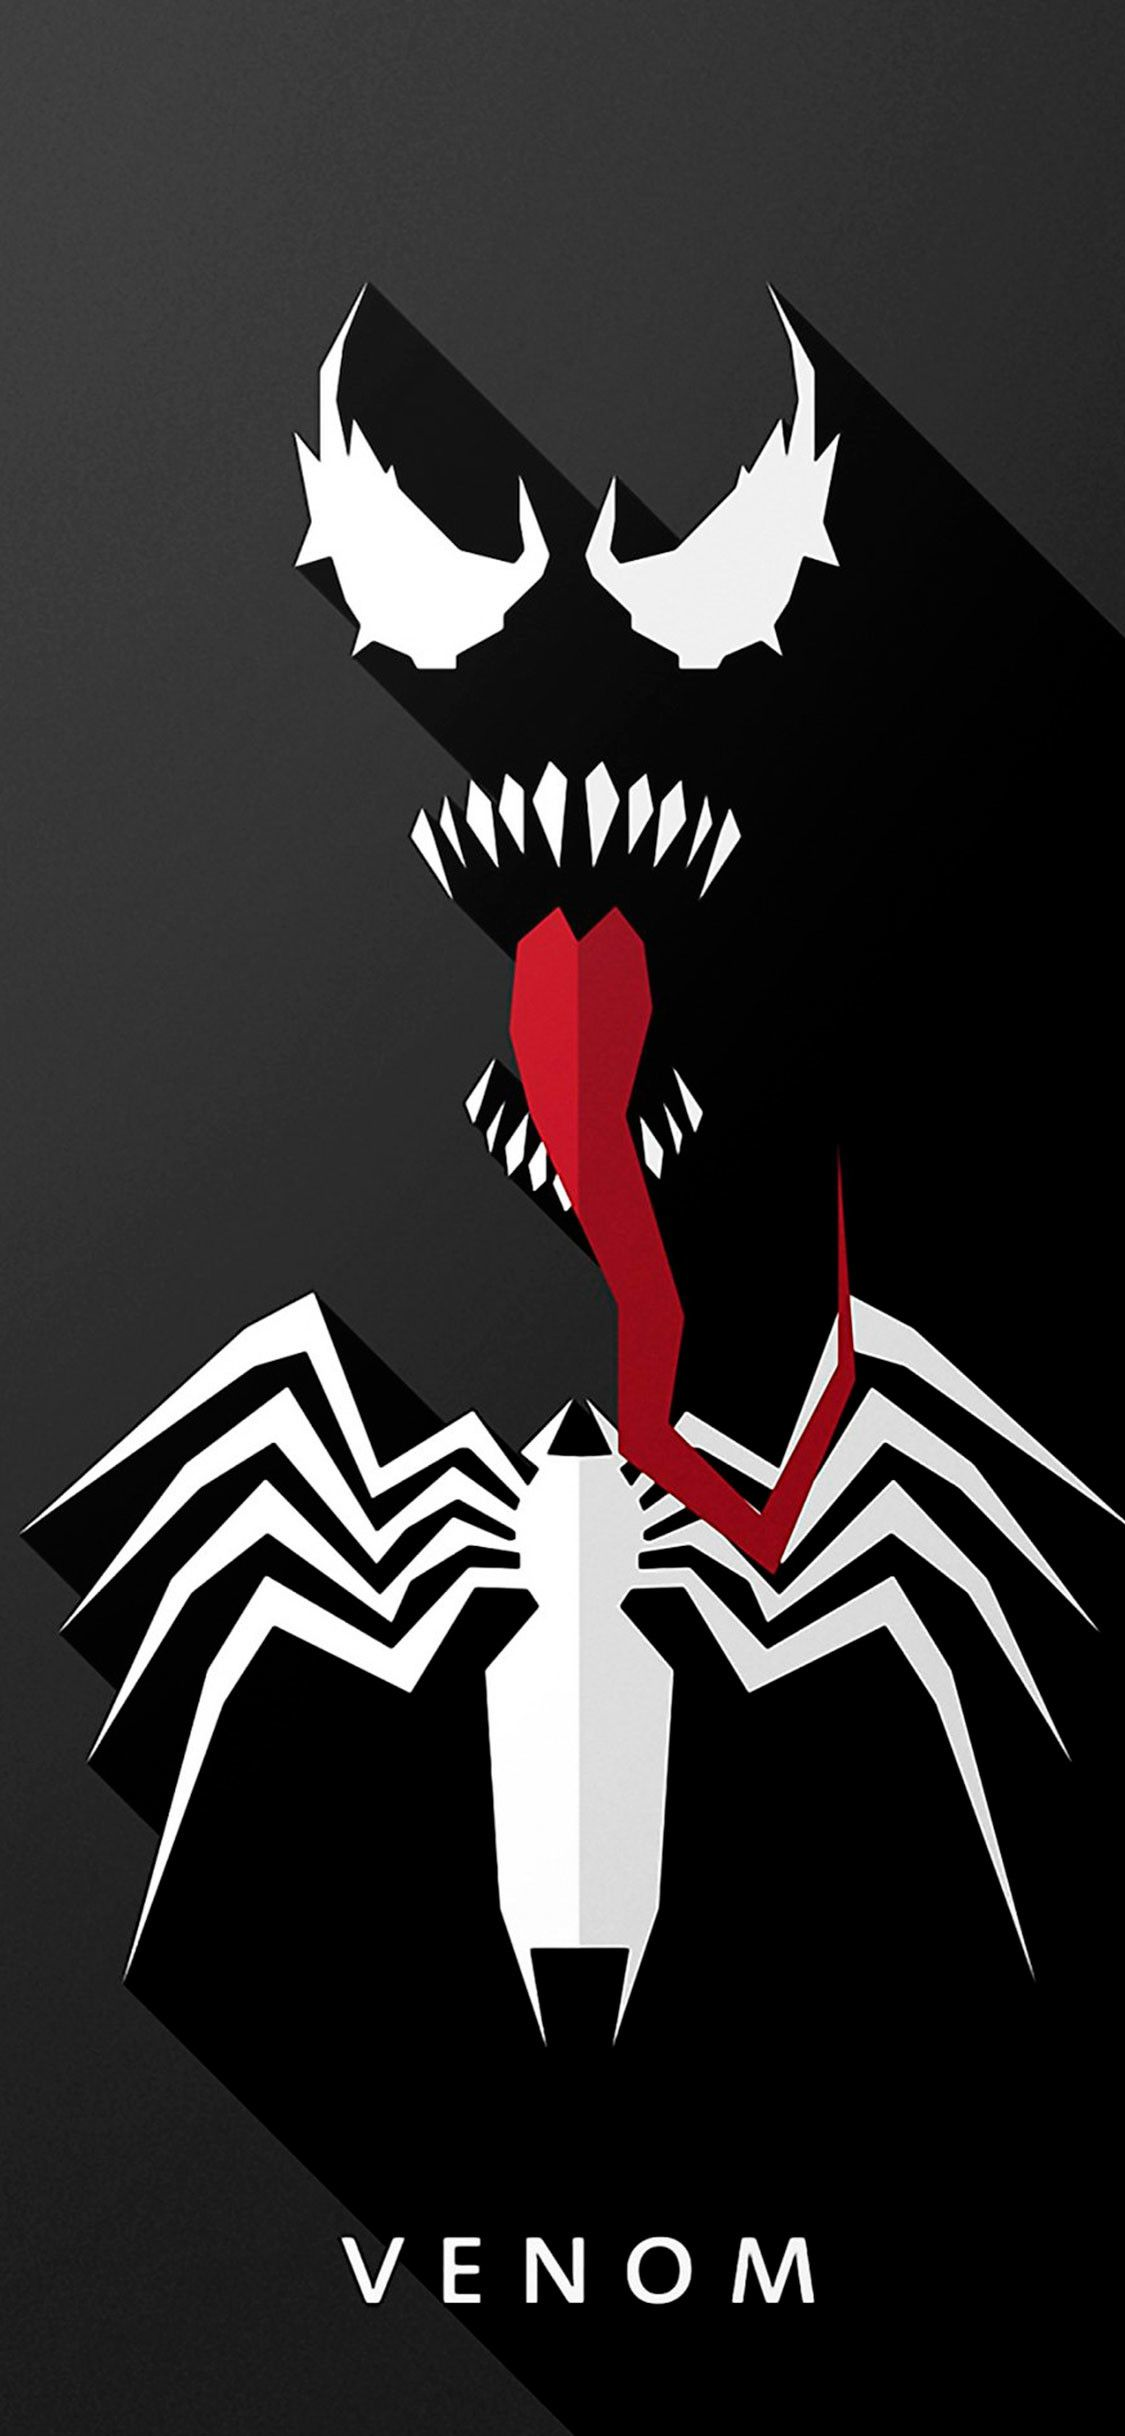 Venom Wallpaper Iphone Xs Max The Galleries Of Hd Wallpaper